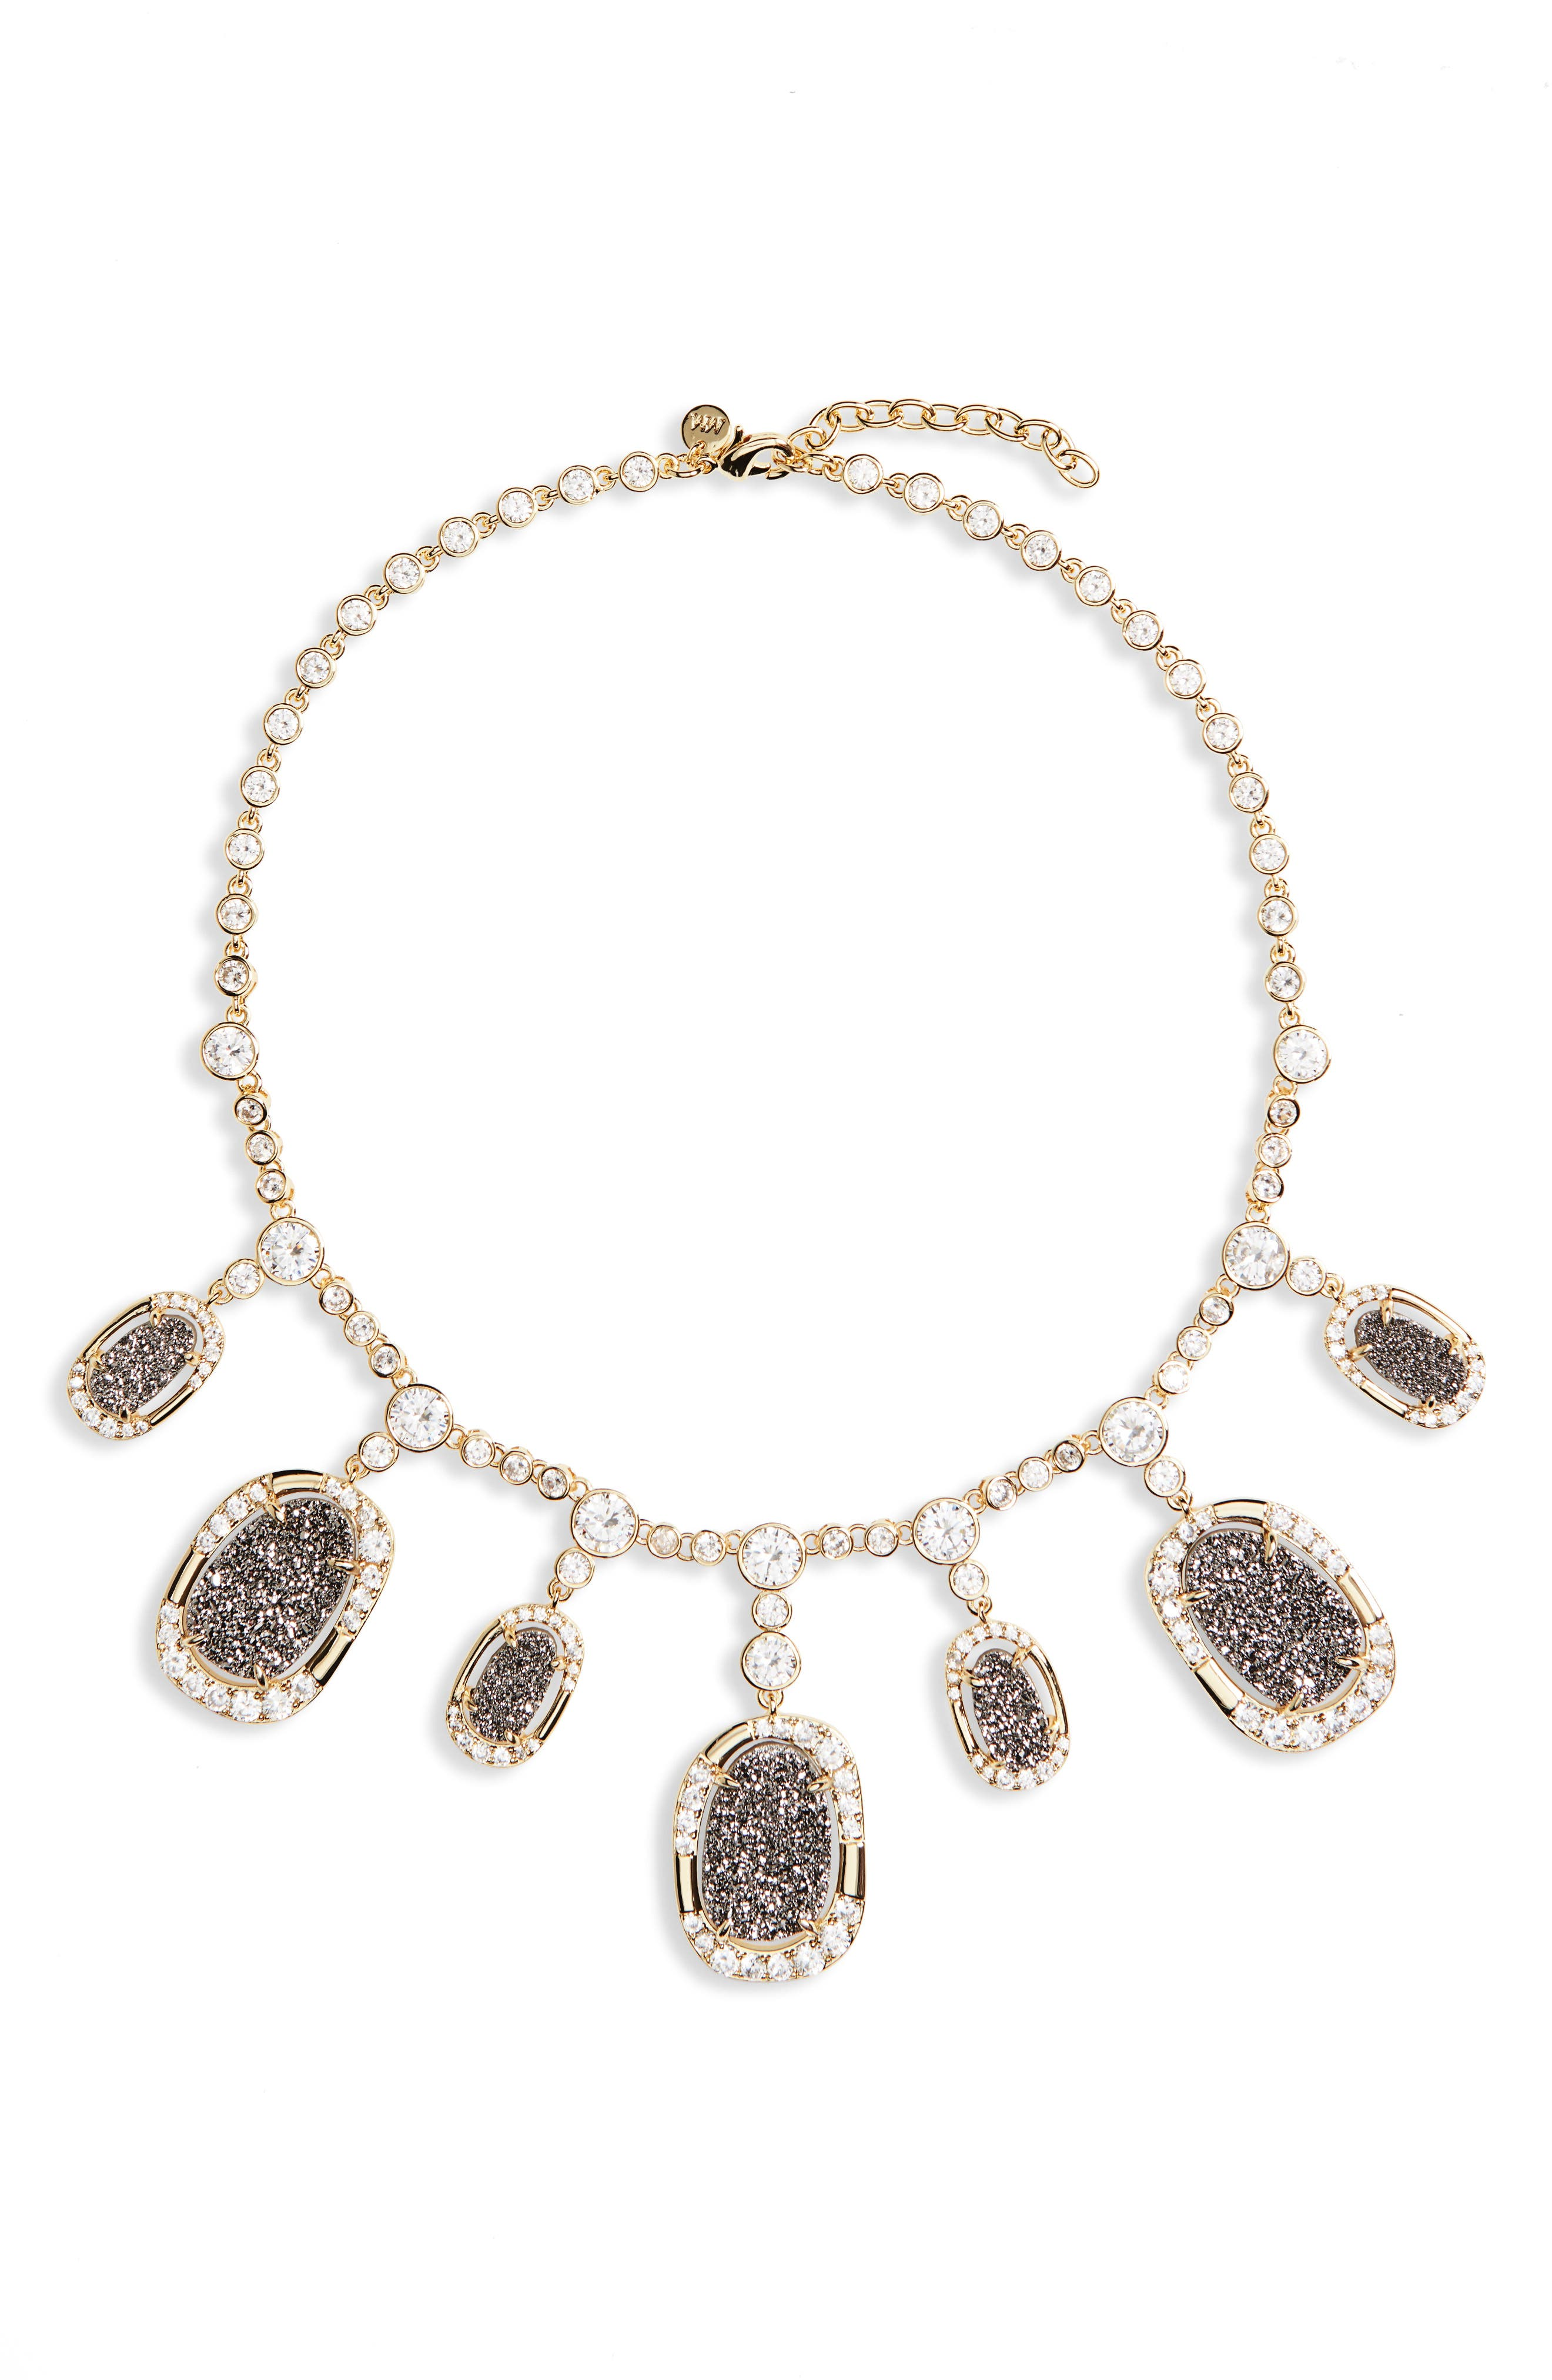 Woodward Statement Necklace,                             Main thumbnail 1, color,                             Grey Druzy/ Gold